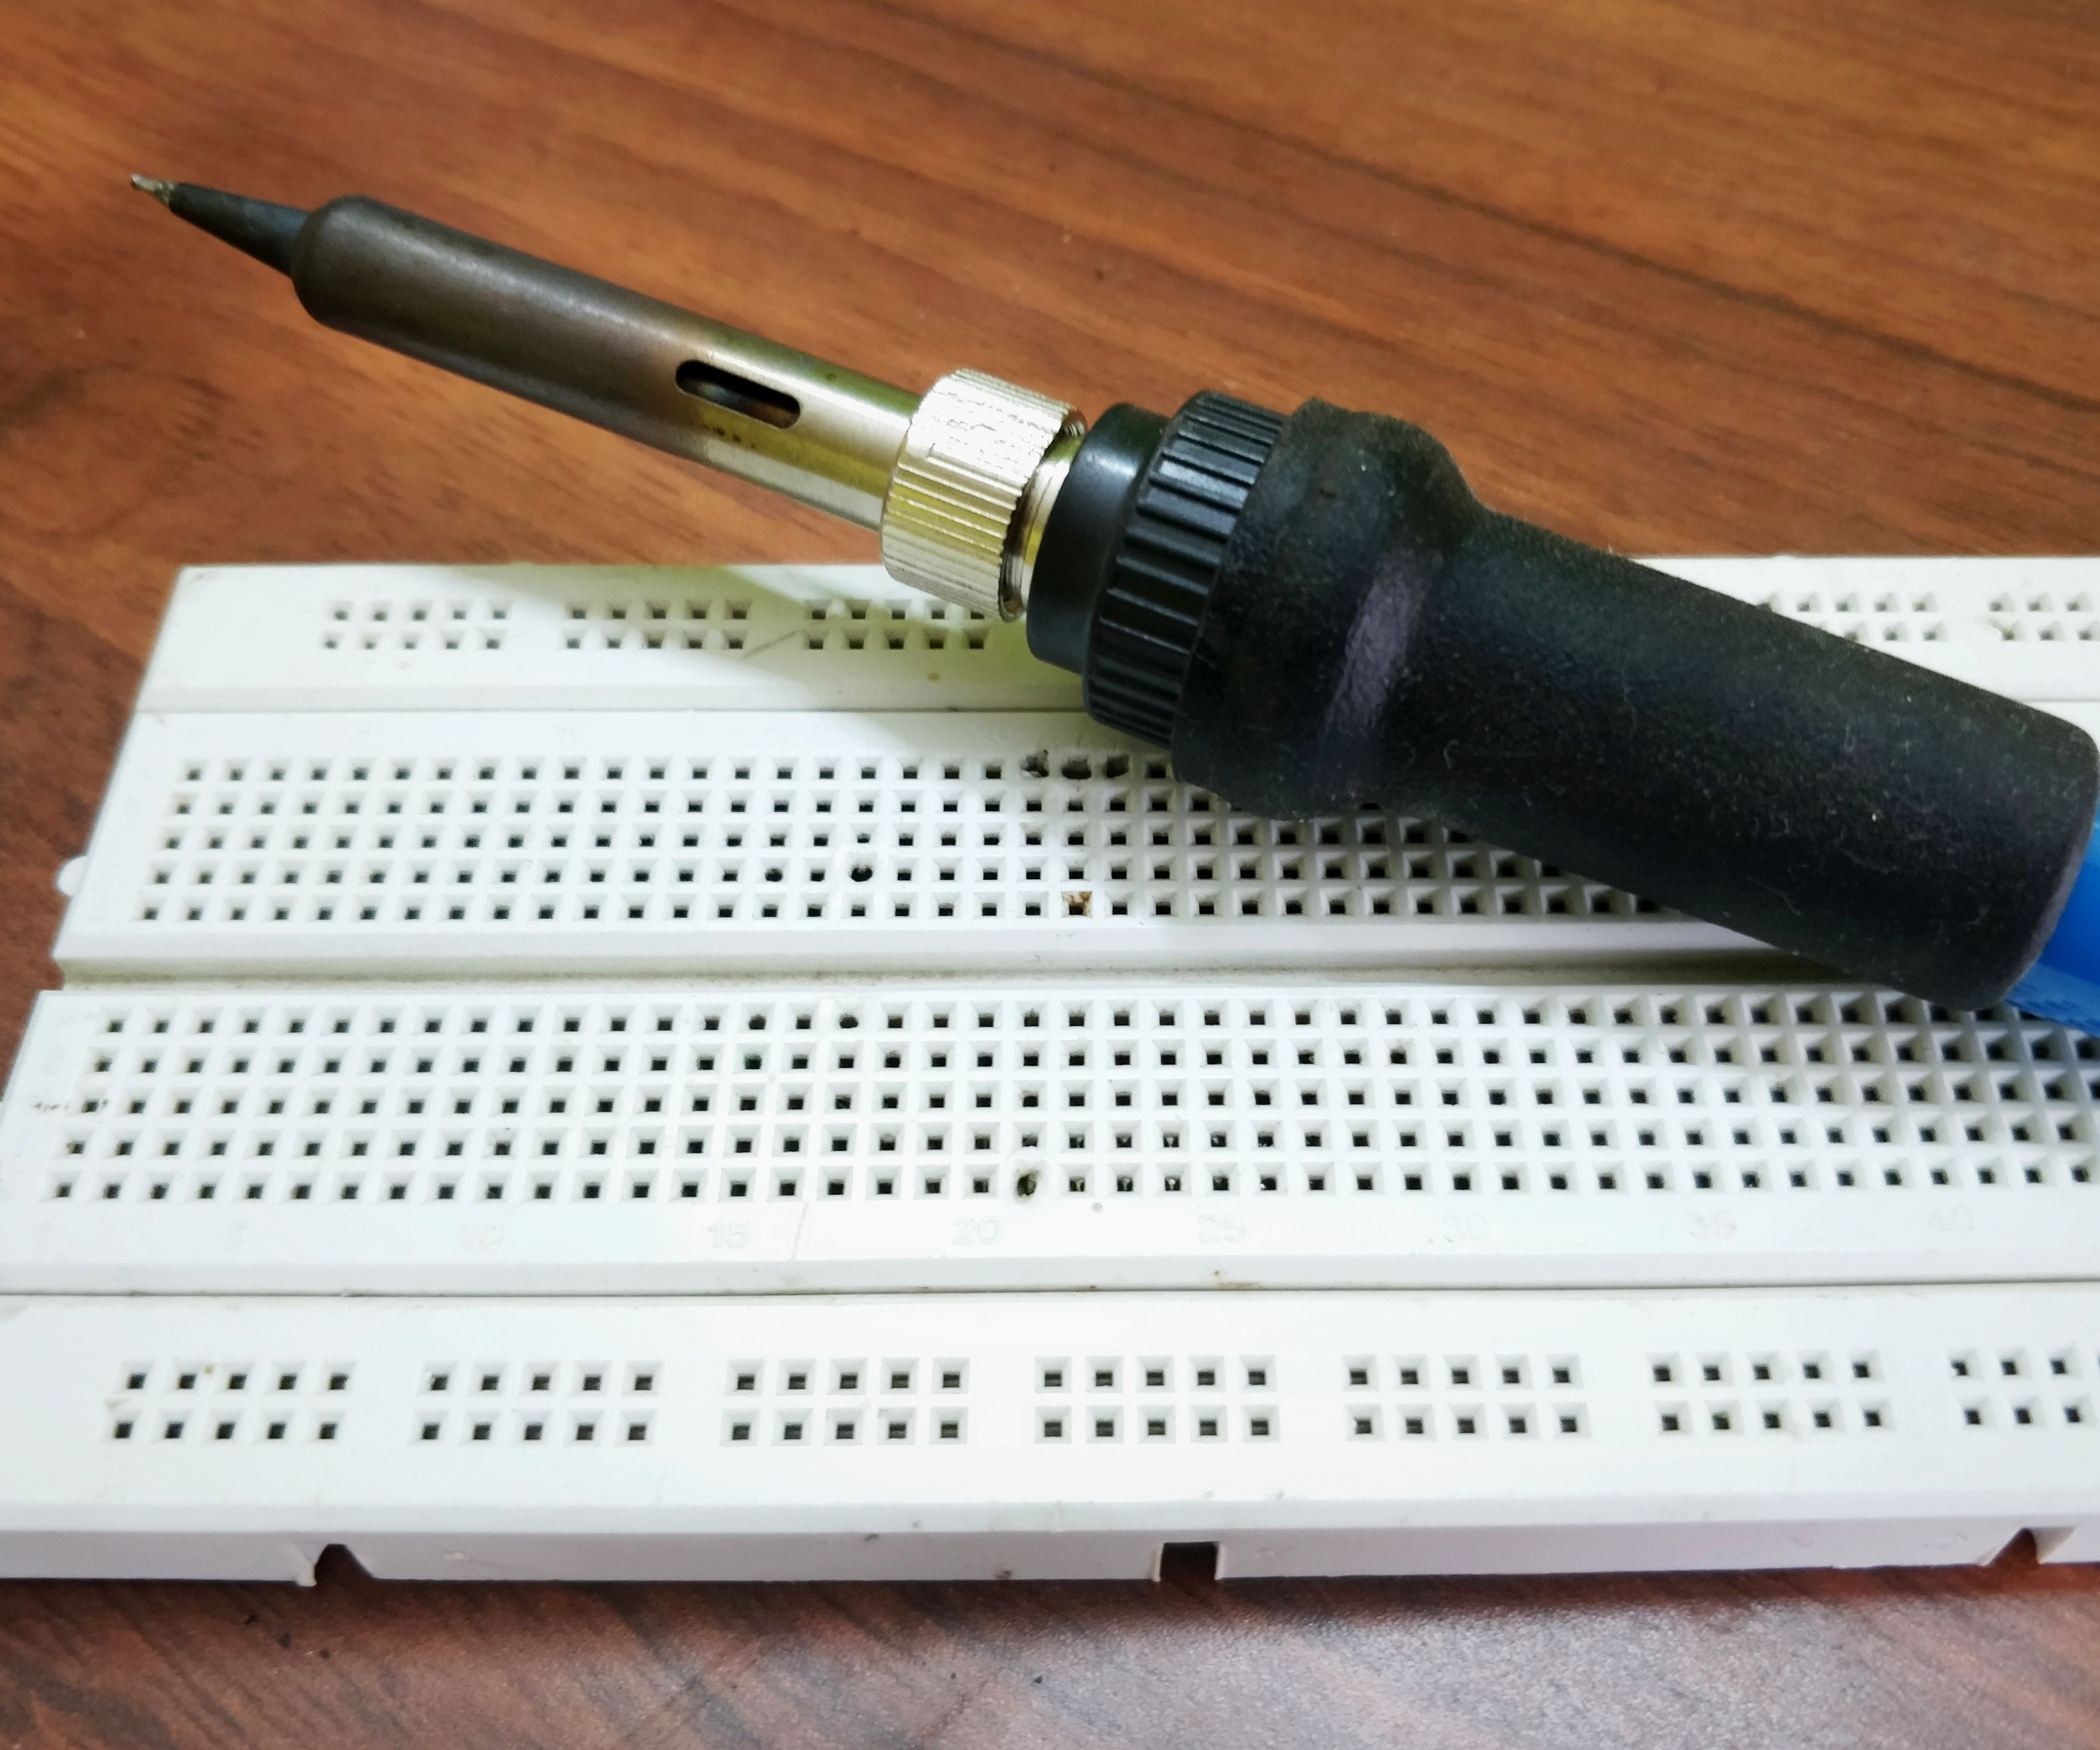 10 Breadboard and Soldering Tips